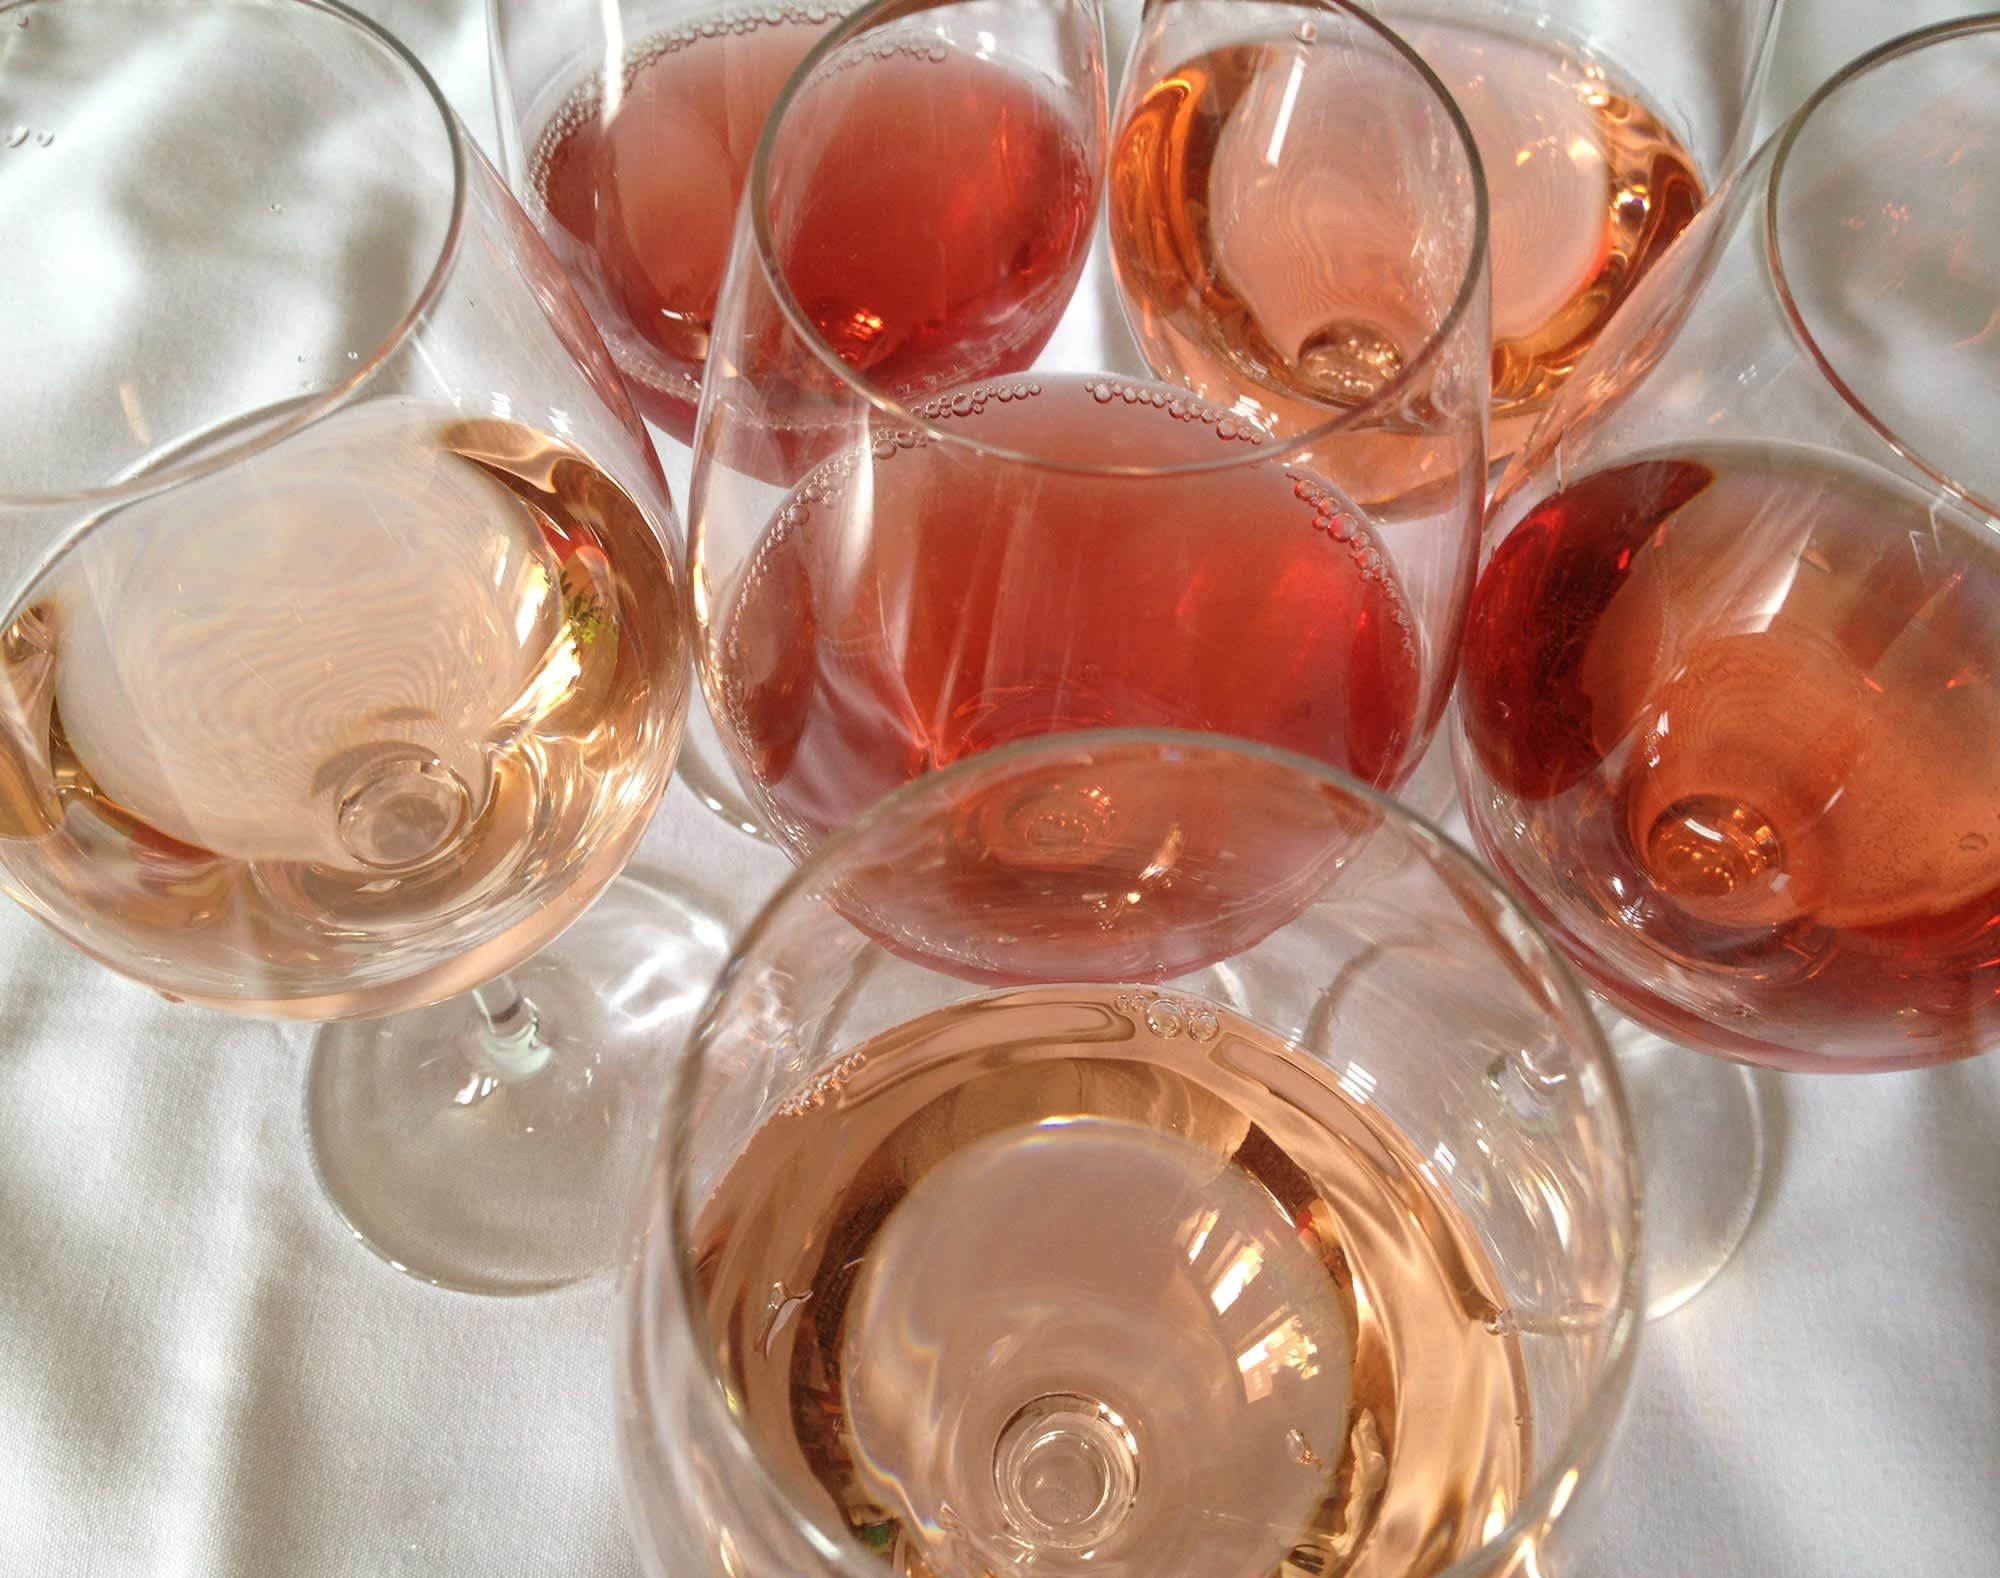 It's Rosé Season Again! What's In Your Glass this Summer?